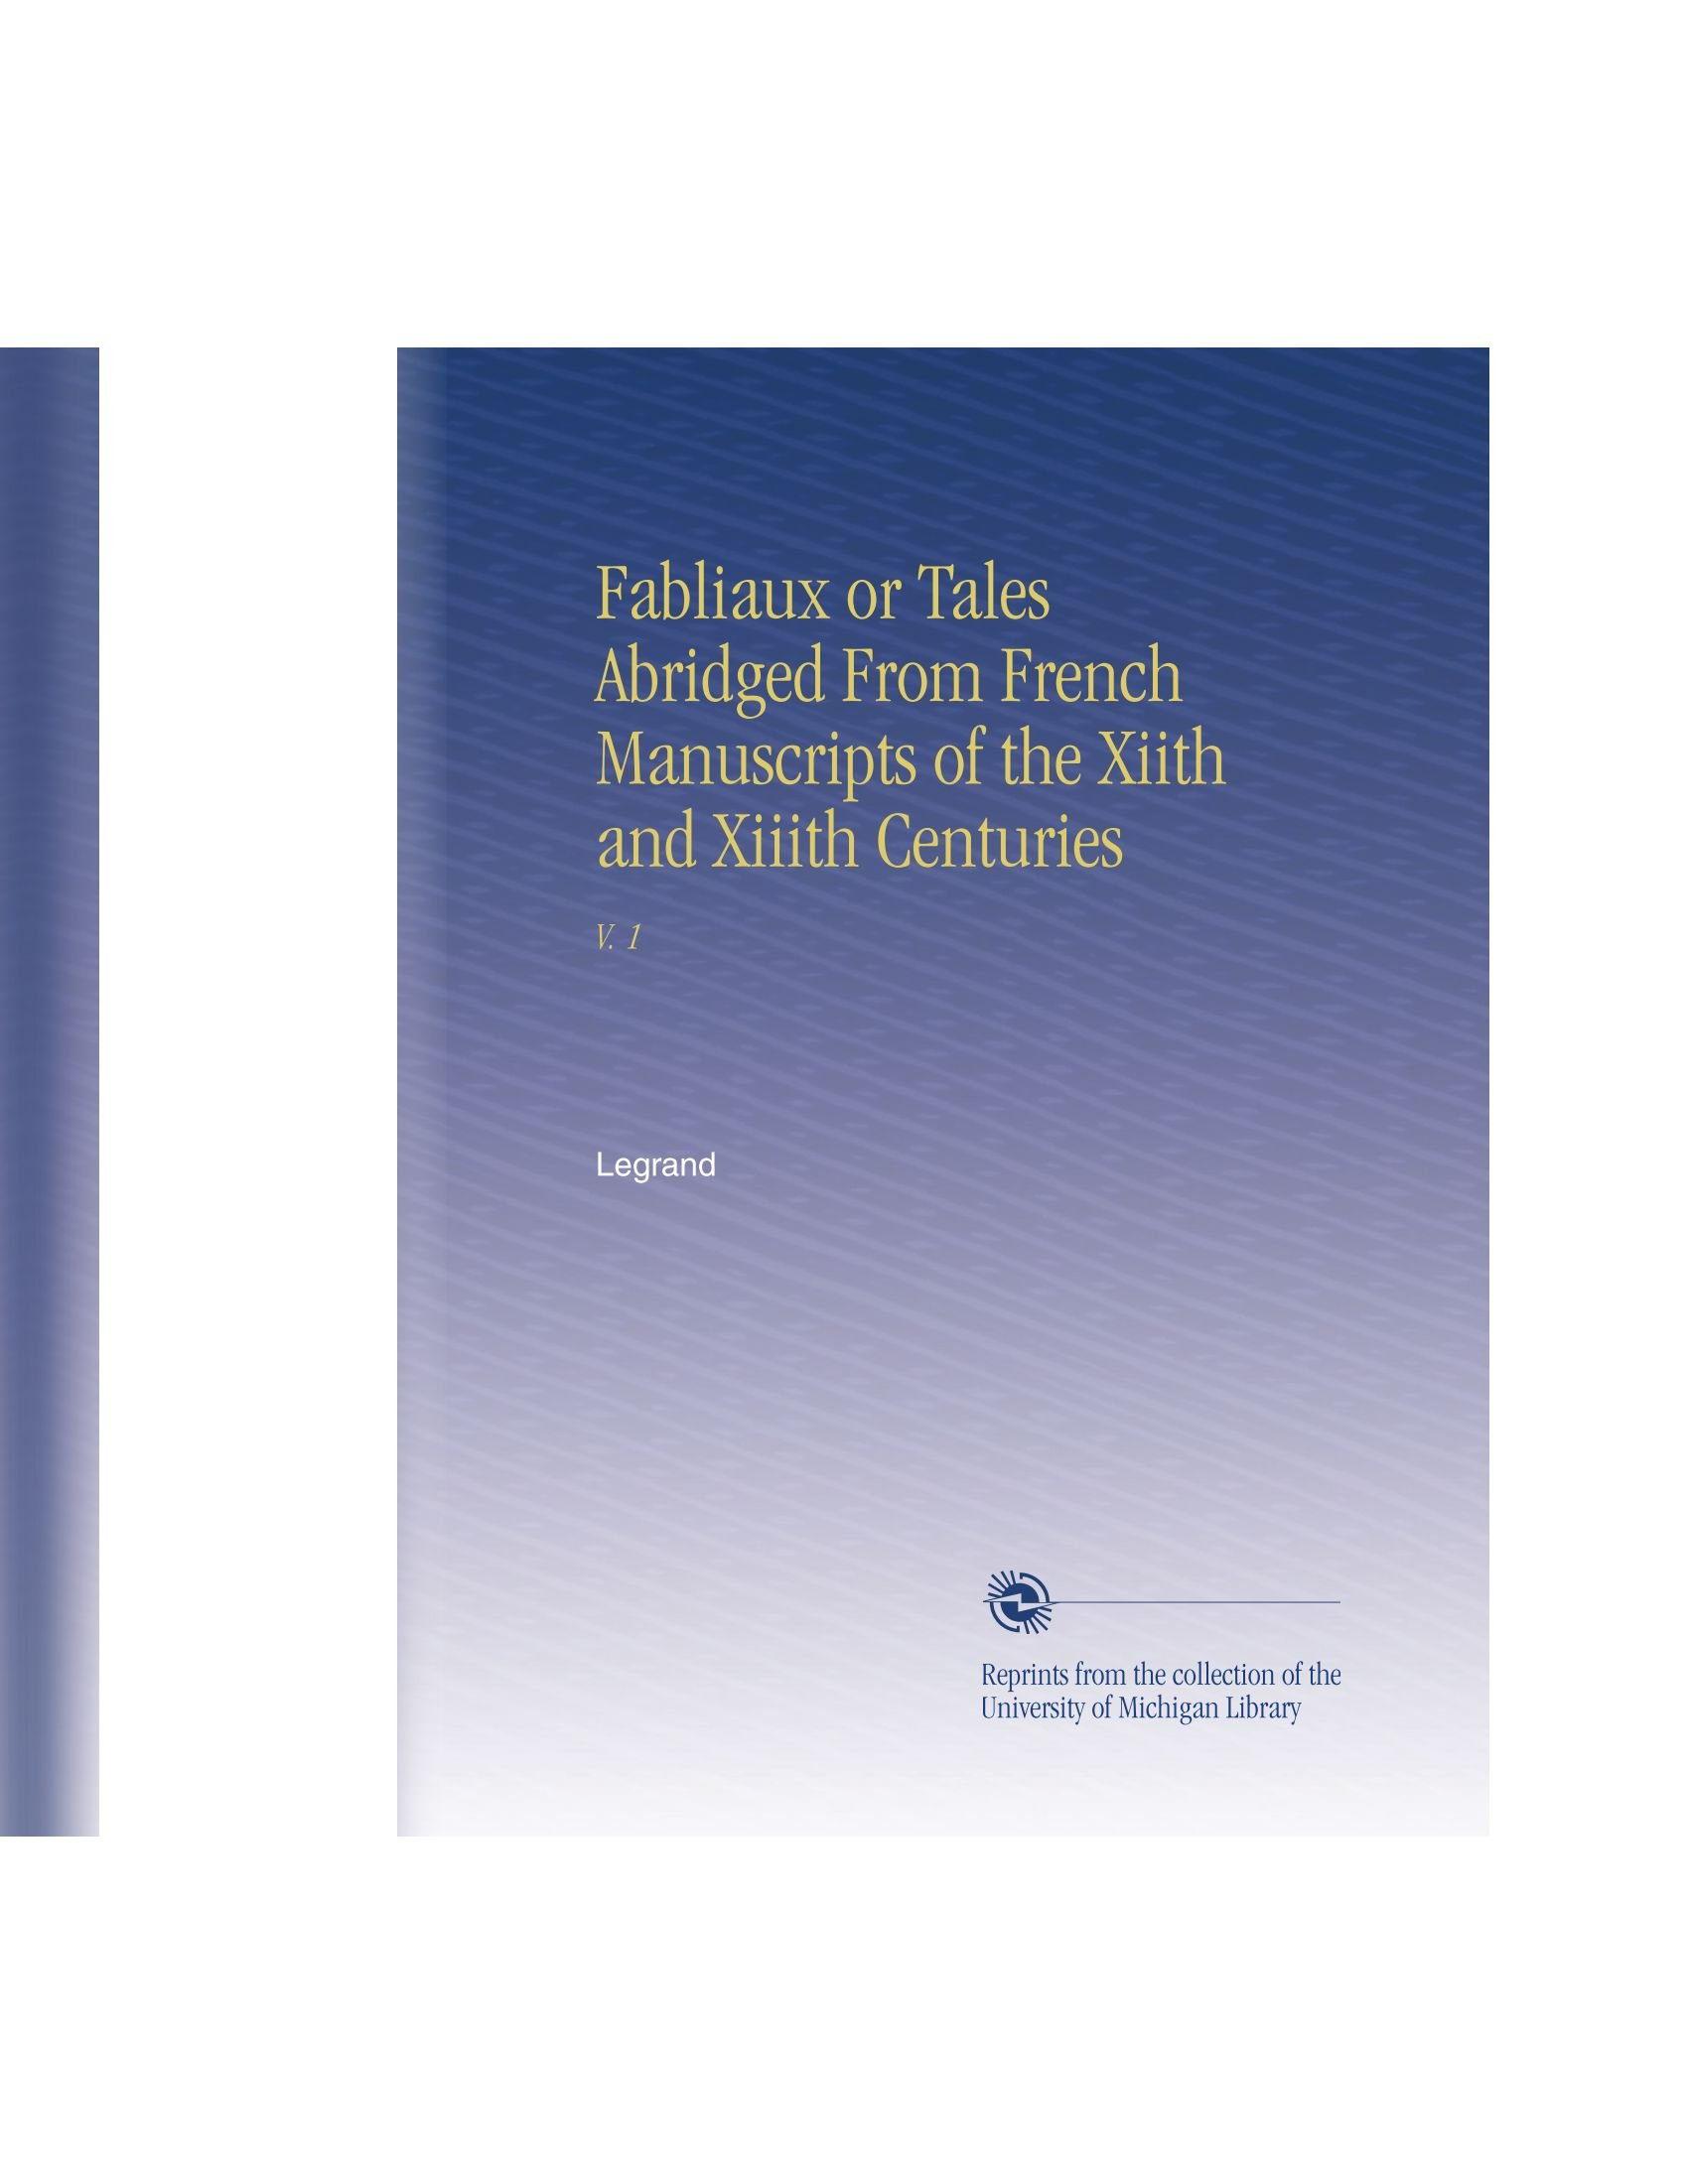 Download Fabliaux or Tales Abridged From French Manuscripts of the Xiith and Xiiith Centuries: V. 1 pdf